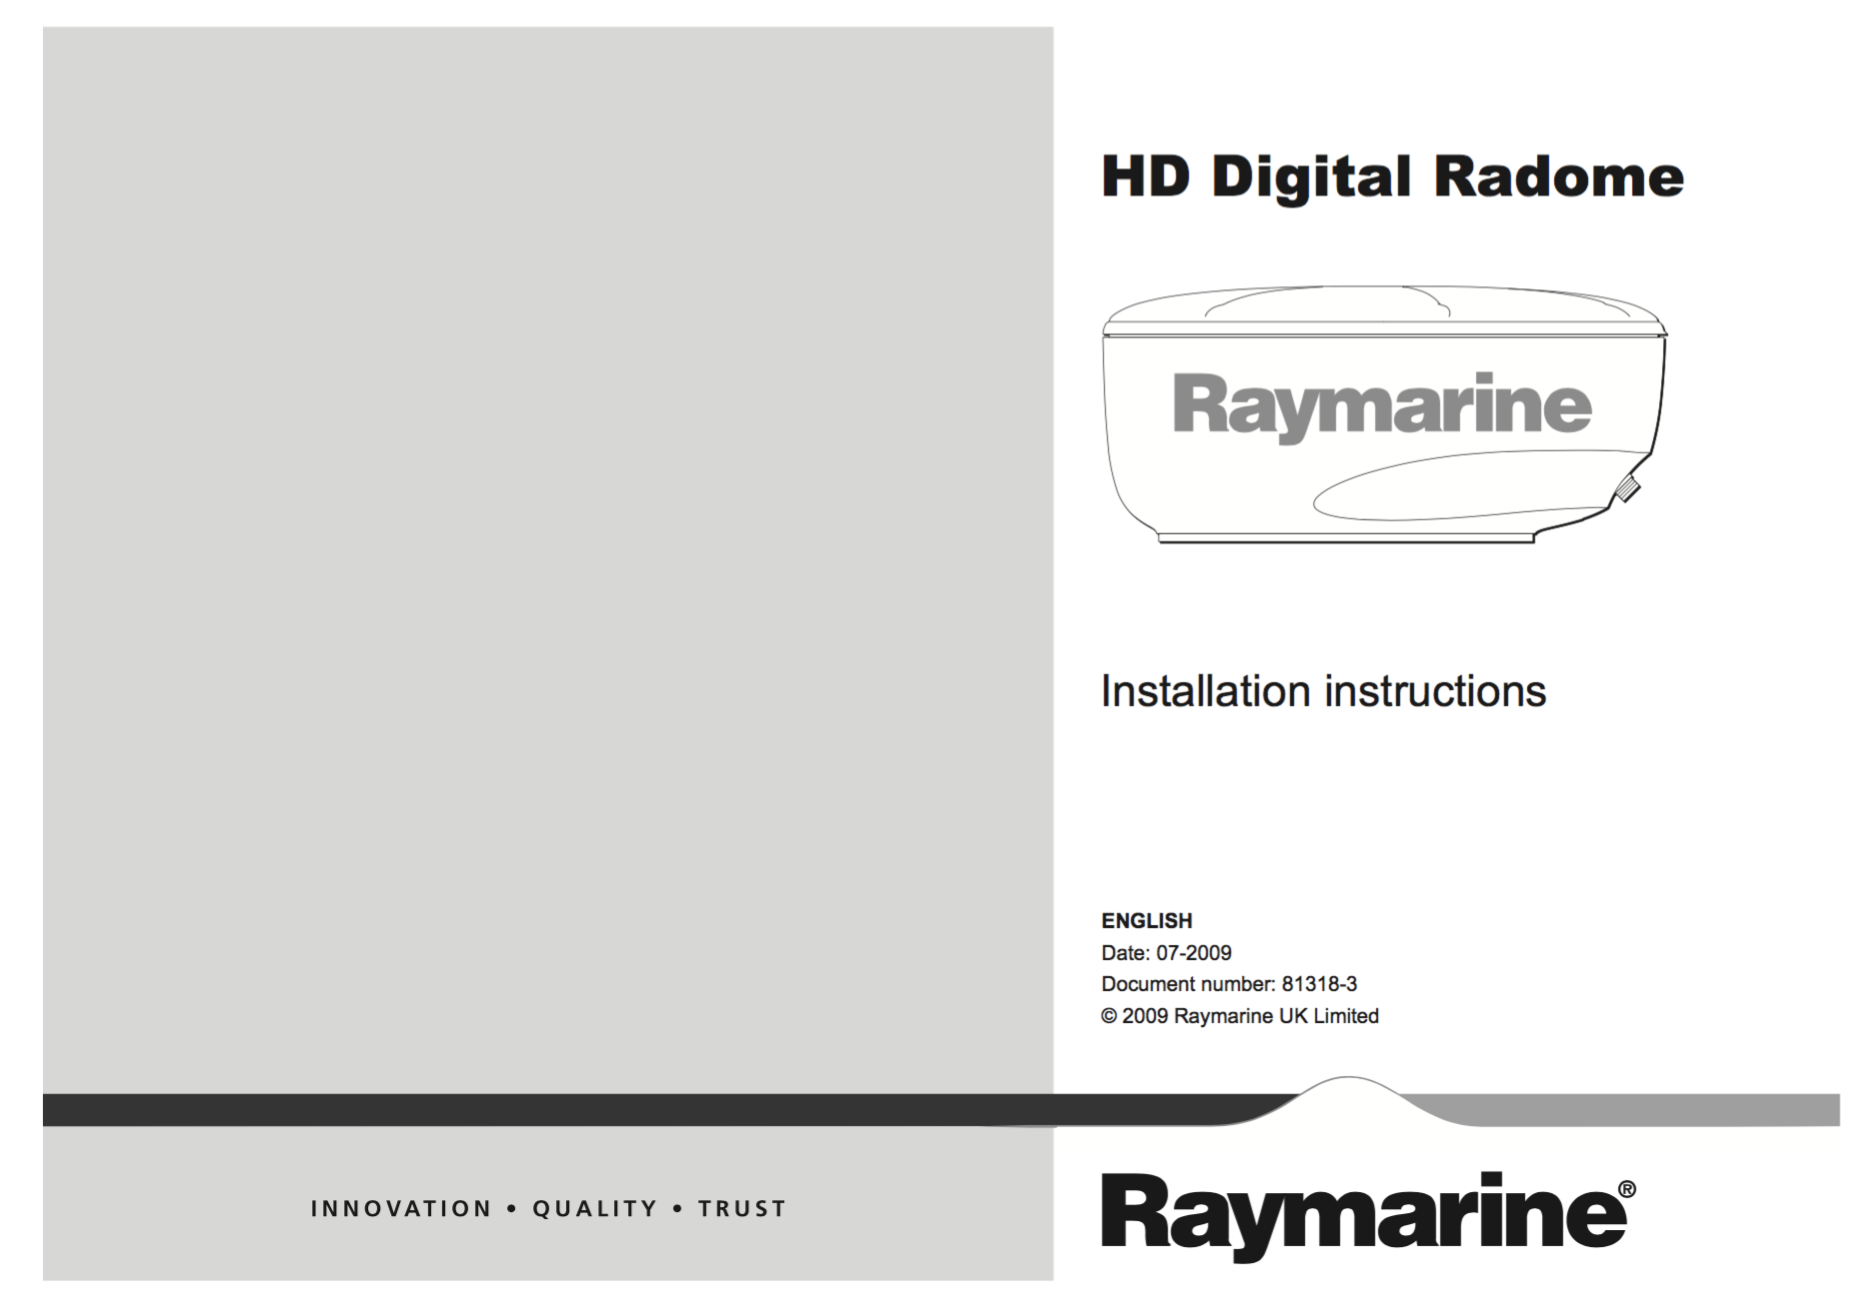 hd digital radome installation instructions